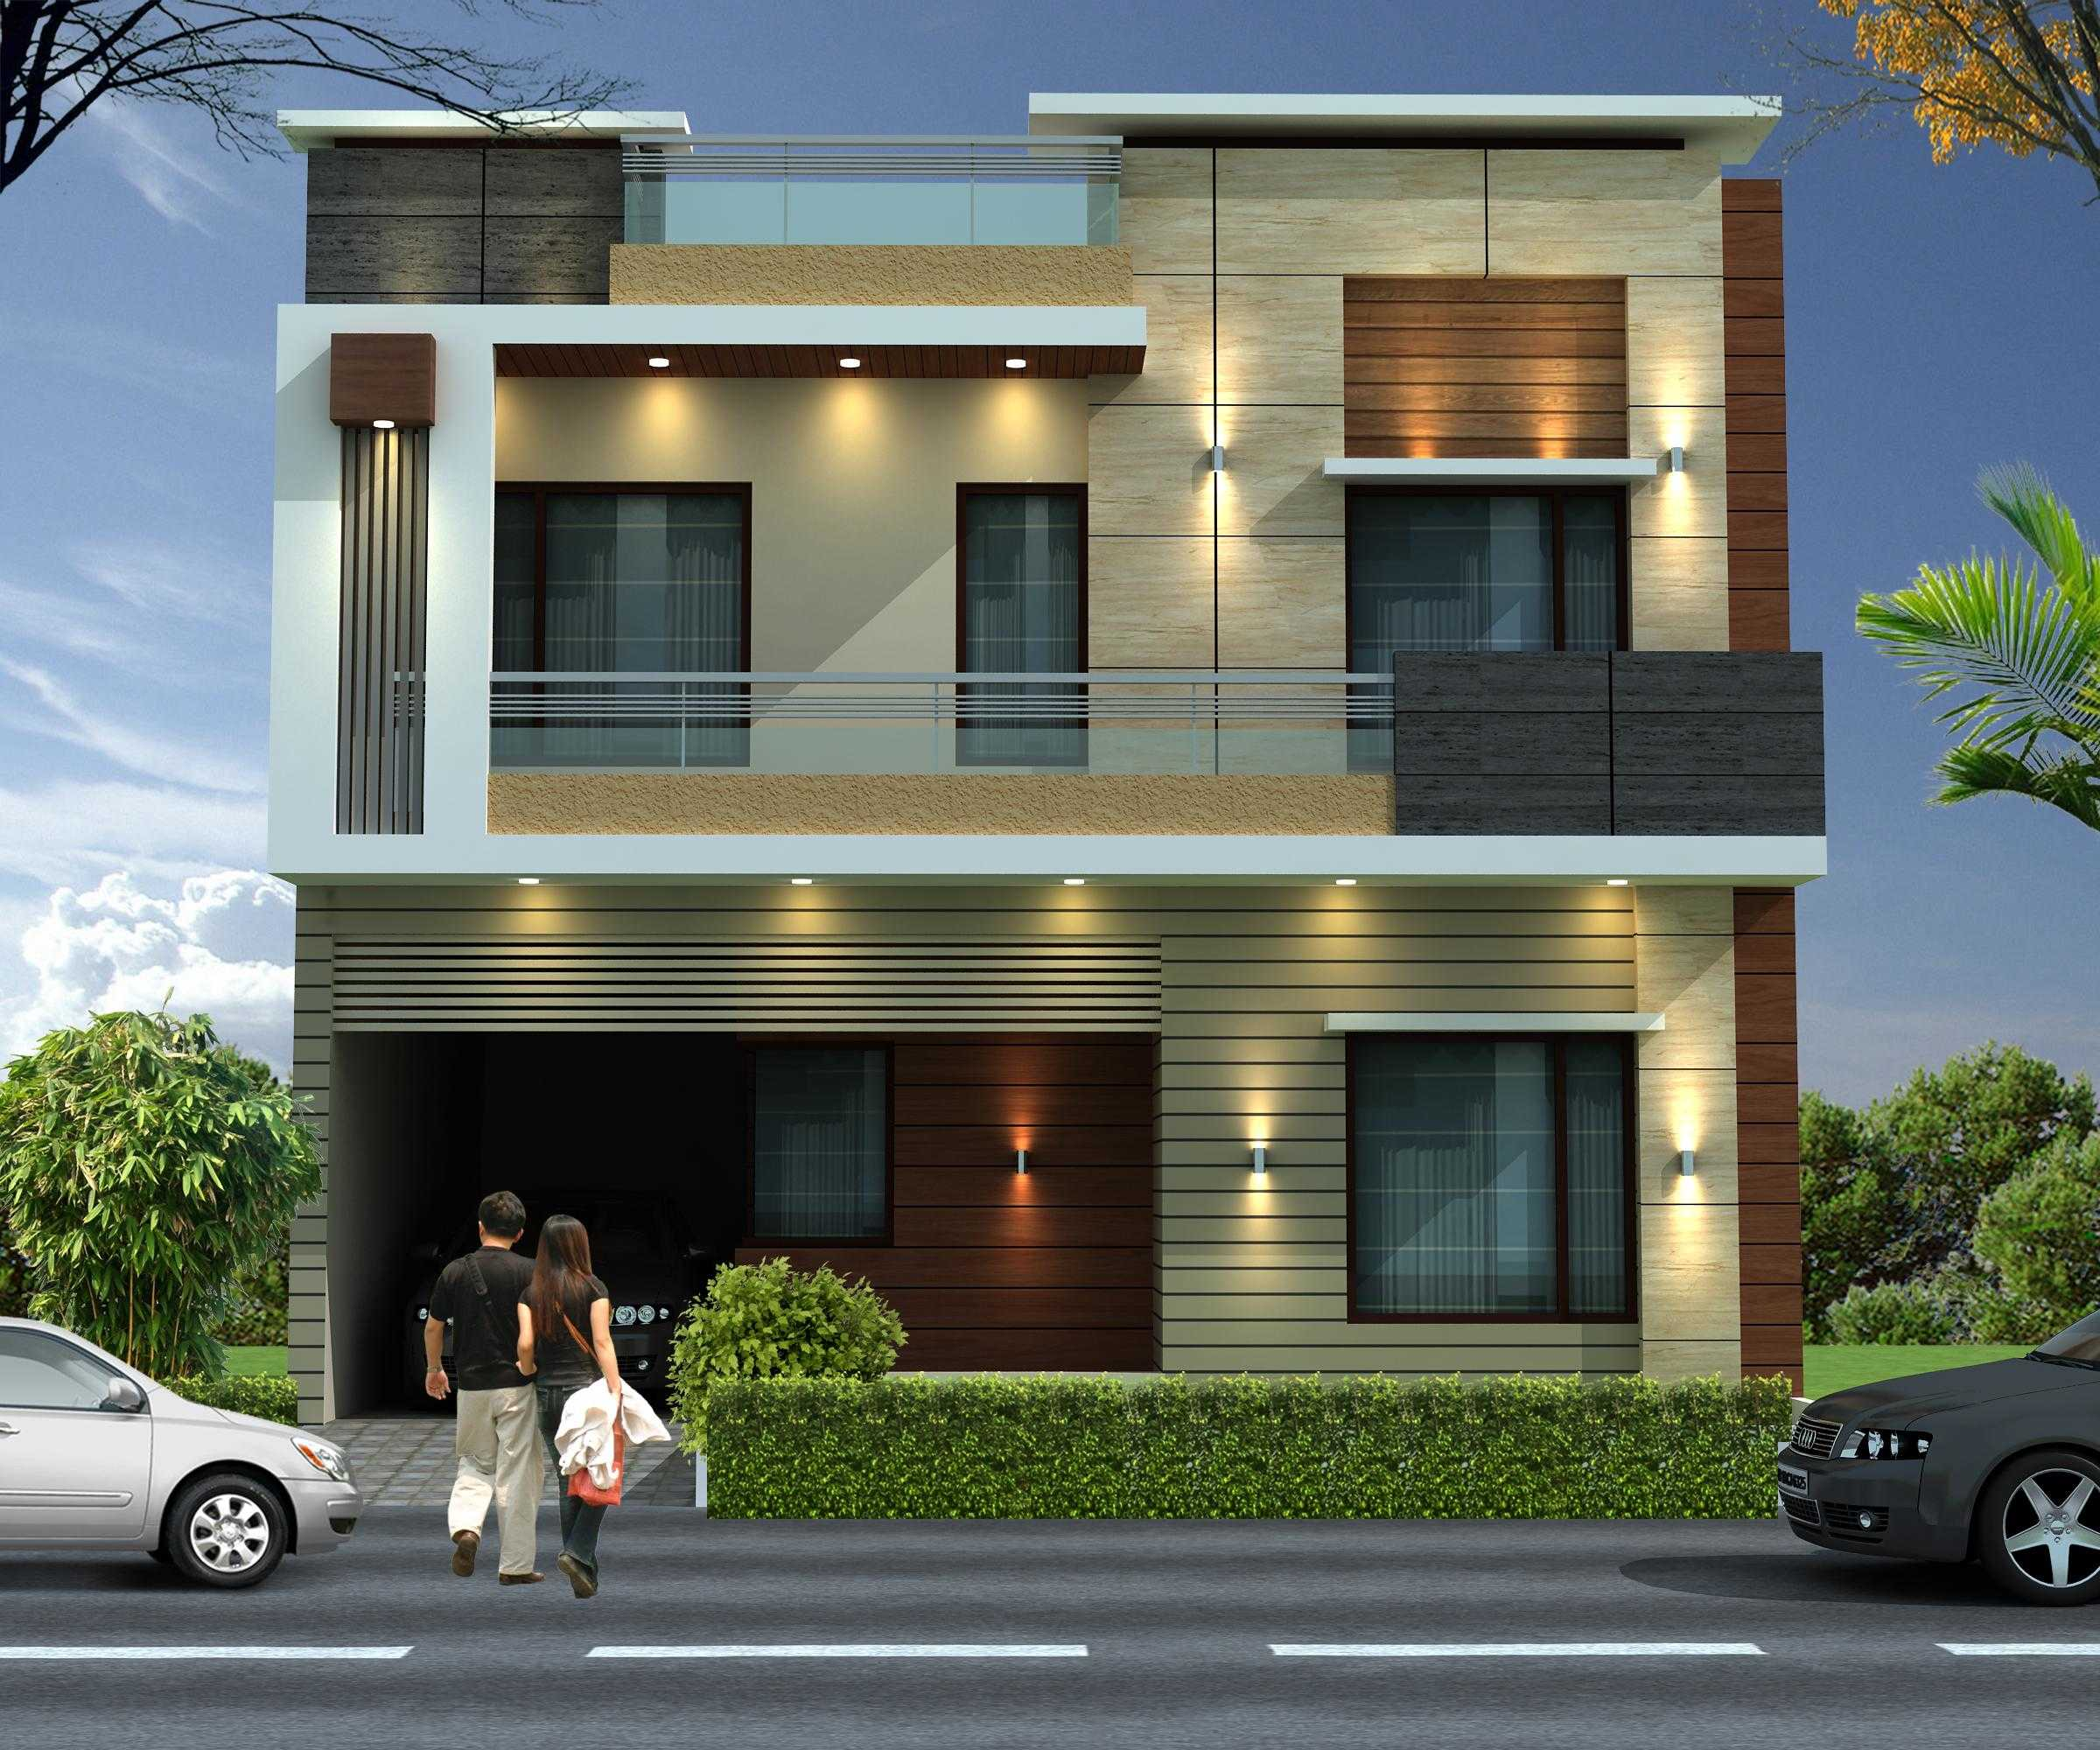 Inspiring House Design In Punjab Pictures Best Idea Home For Designs Archtect Interior & Home Interior Design In Punjab | Flisol Home